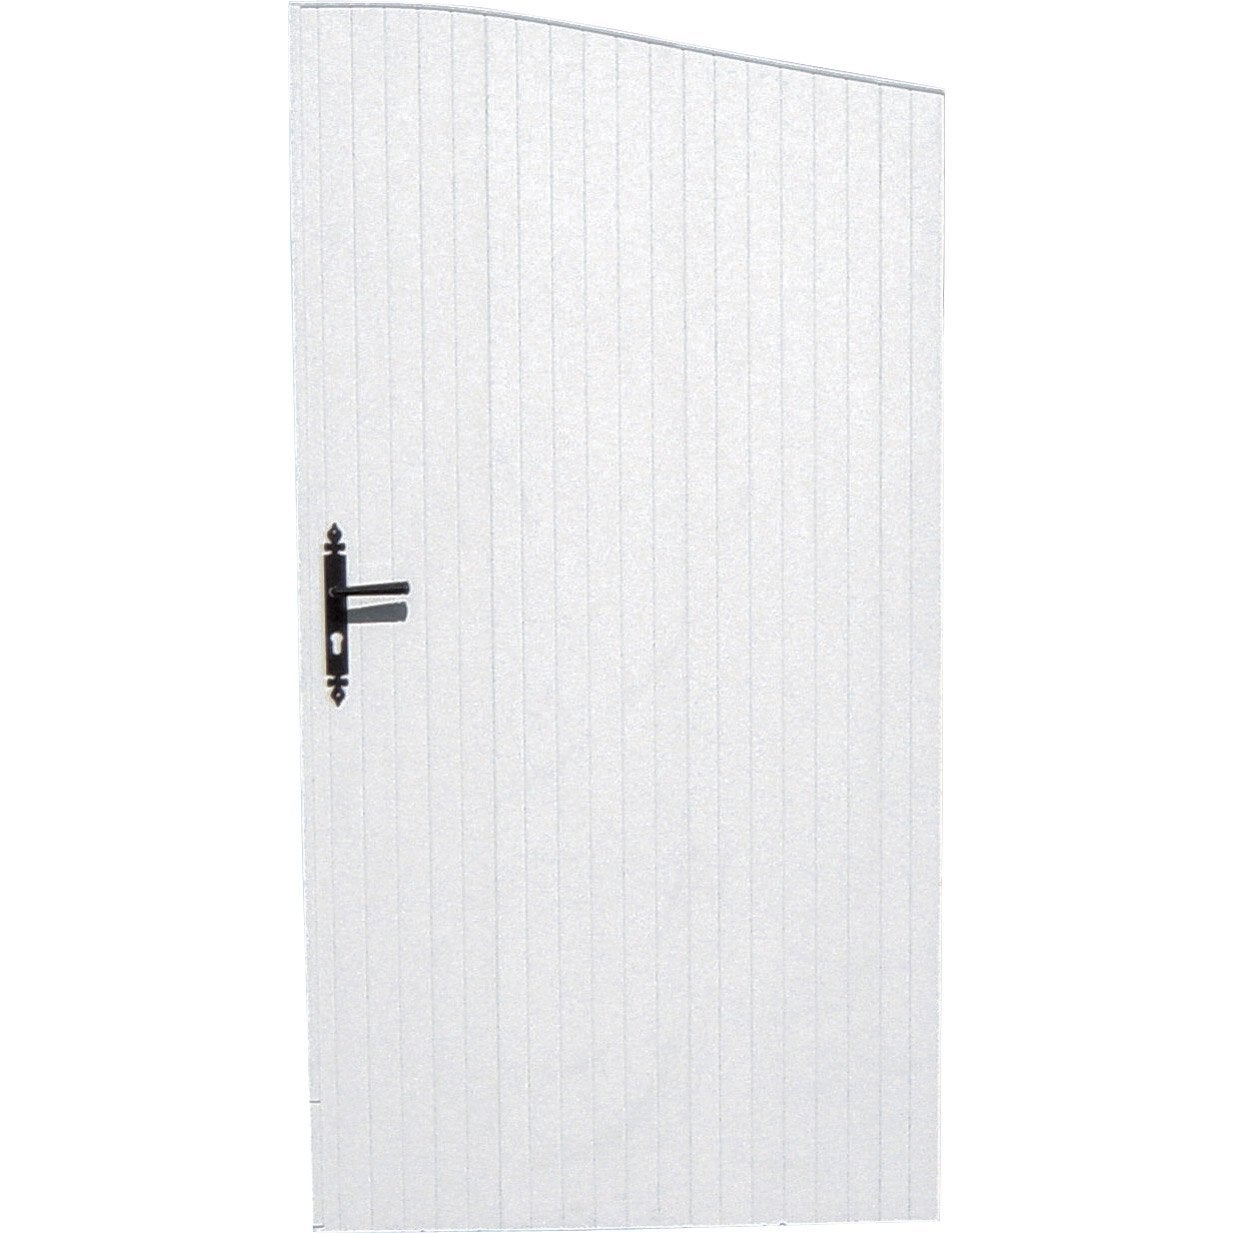 Portillon battant quiberon x cm blanc leroy for Portillon de jardin largeur 1m20